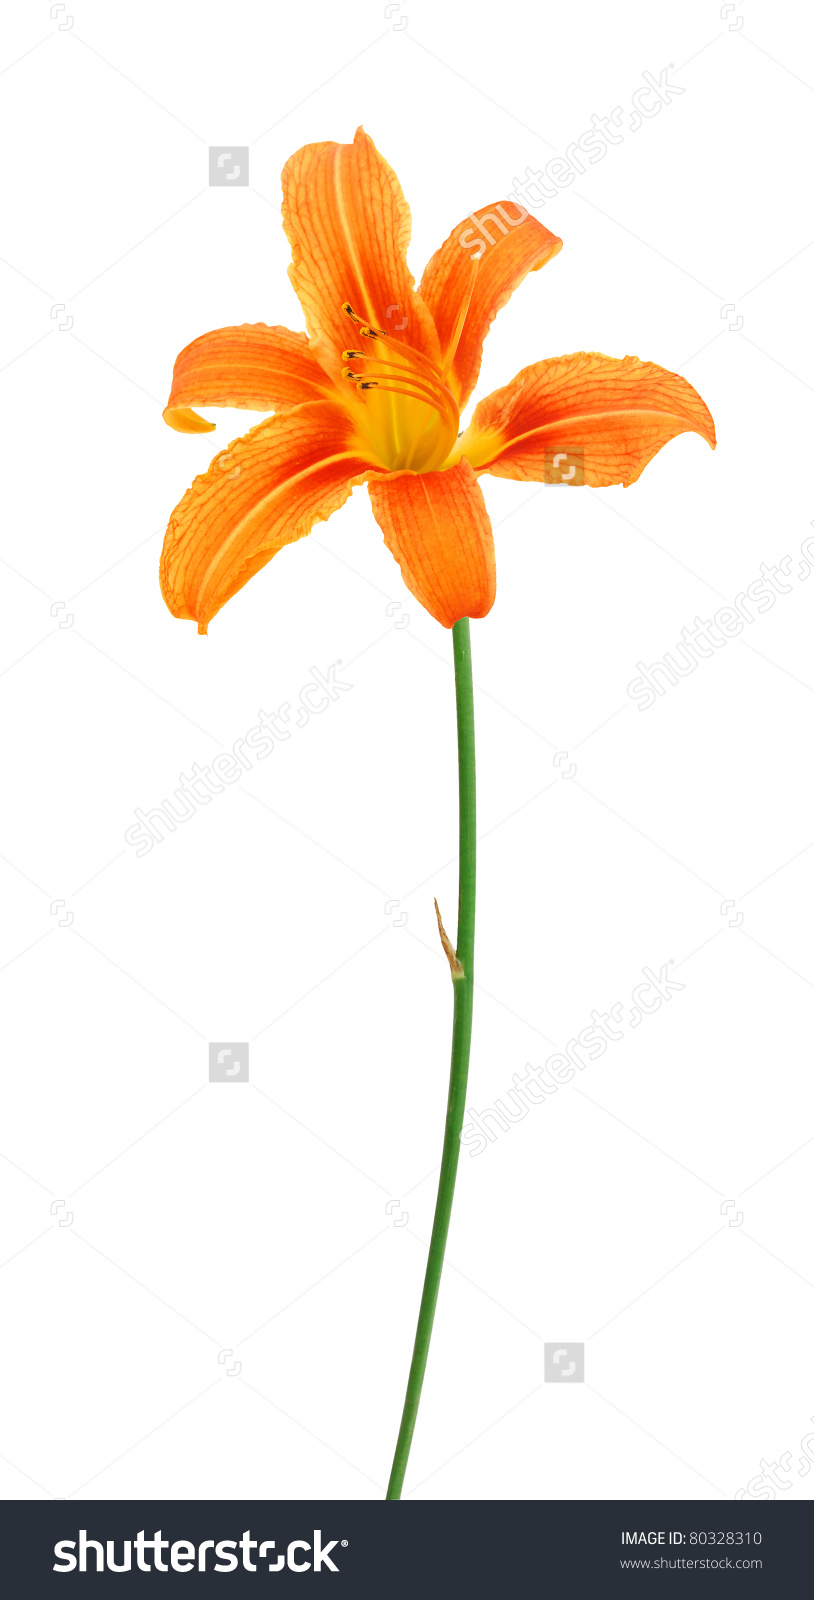 Day lily stem clipart.